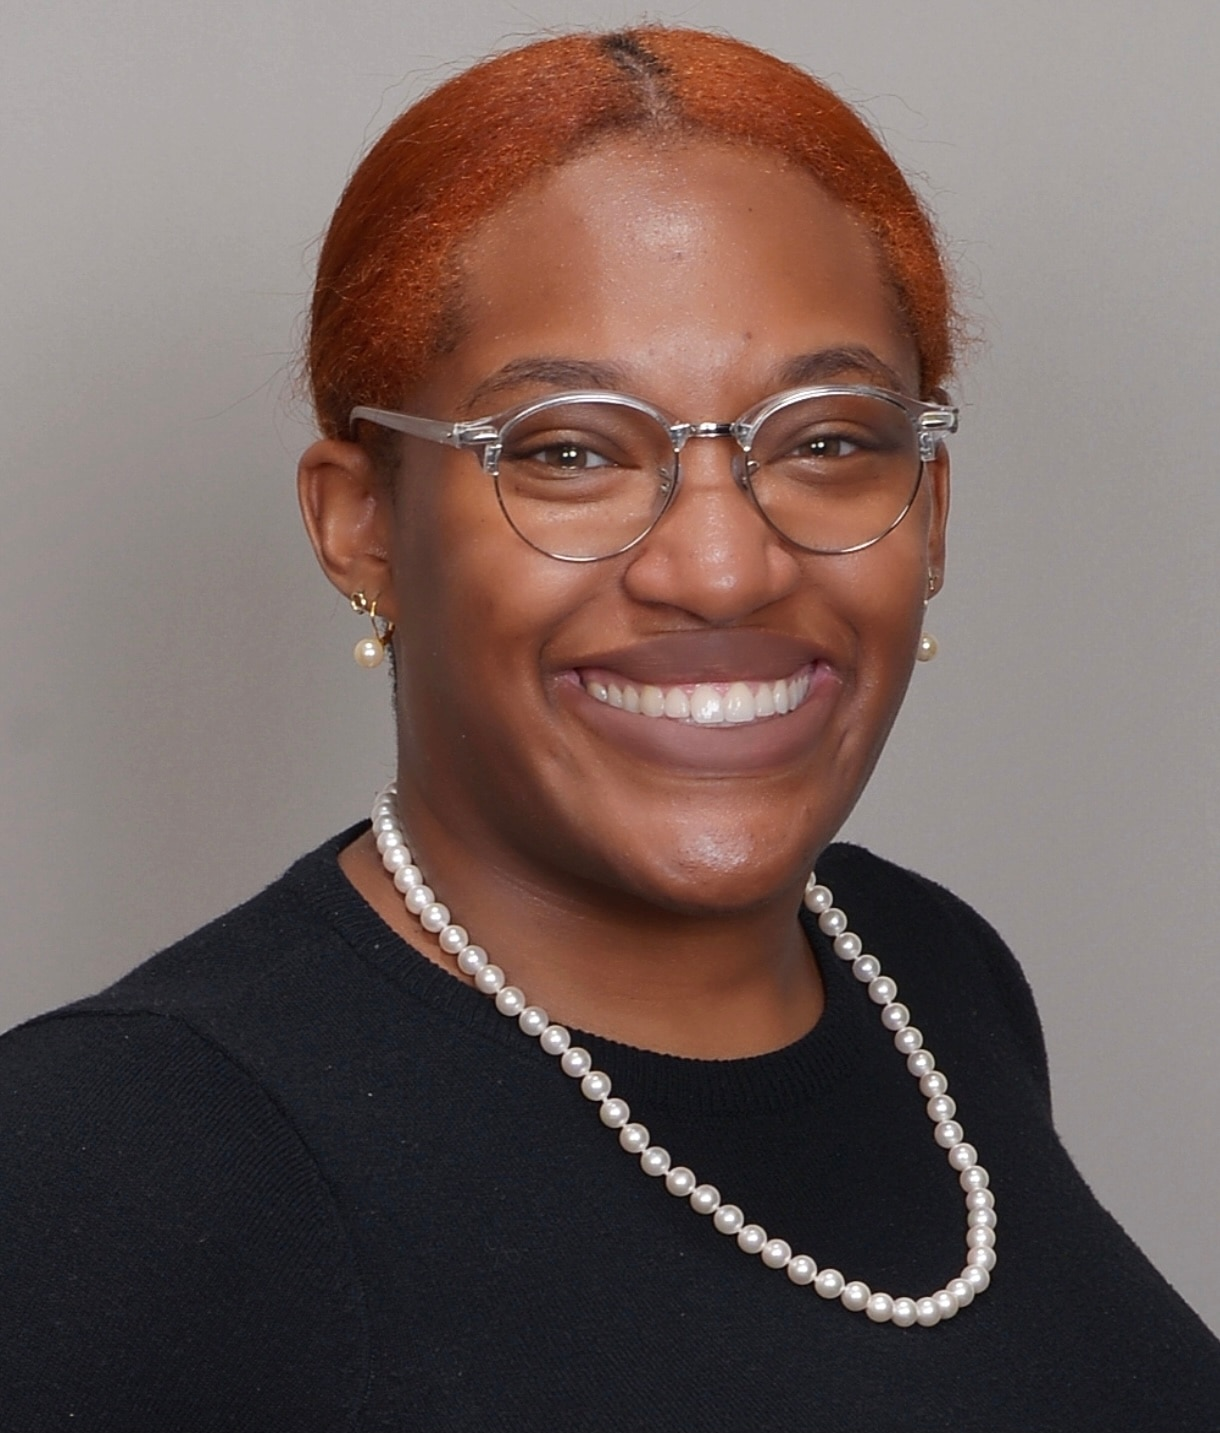 TIANNA LENORE CUMMINGS Financial Professional & Insurance Agent